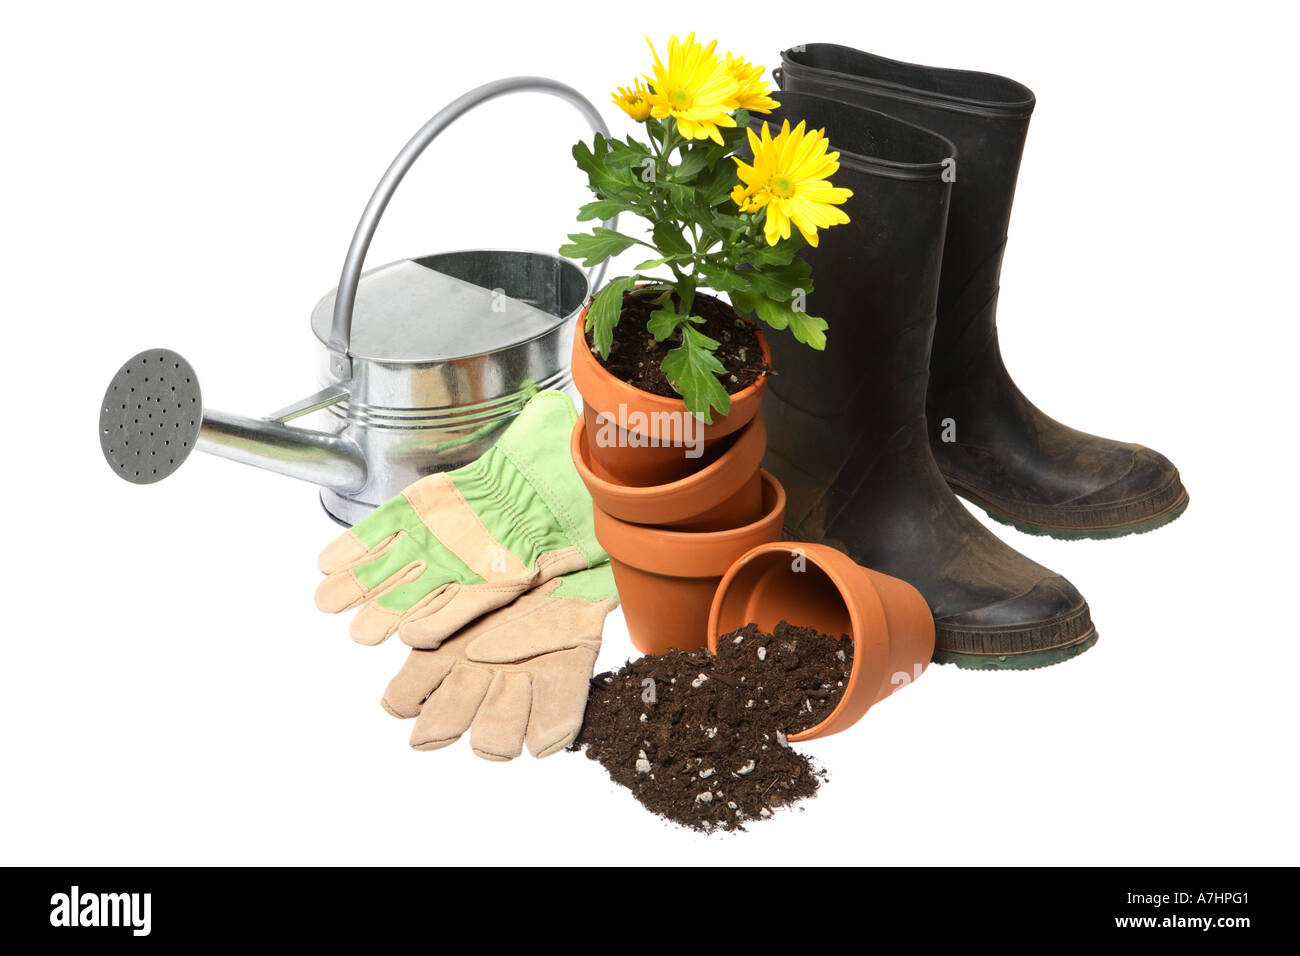 Garden things: watering can, gardening gloves, terra cotta pots, flowers, potting soil and rubber boots. - Stock Image